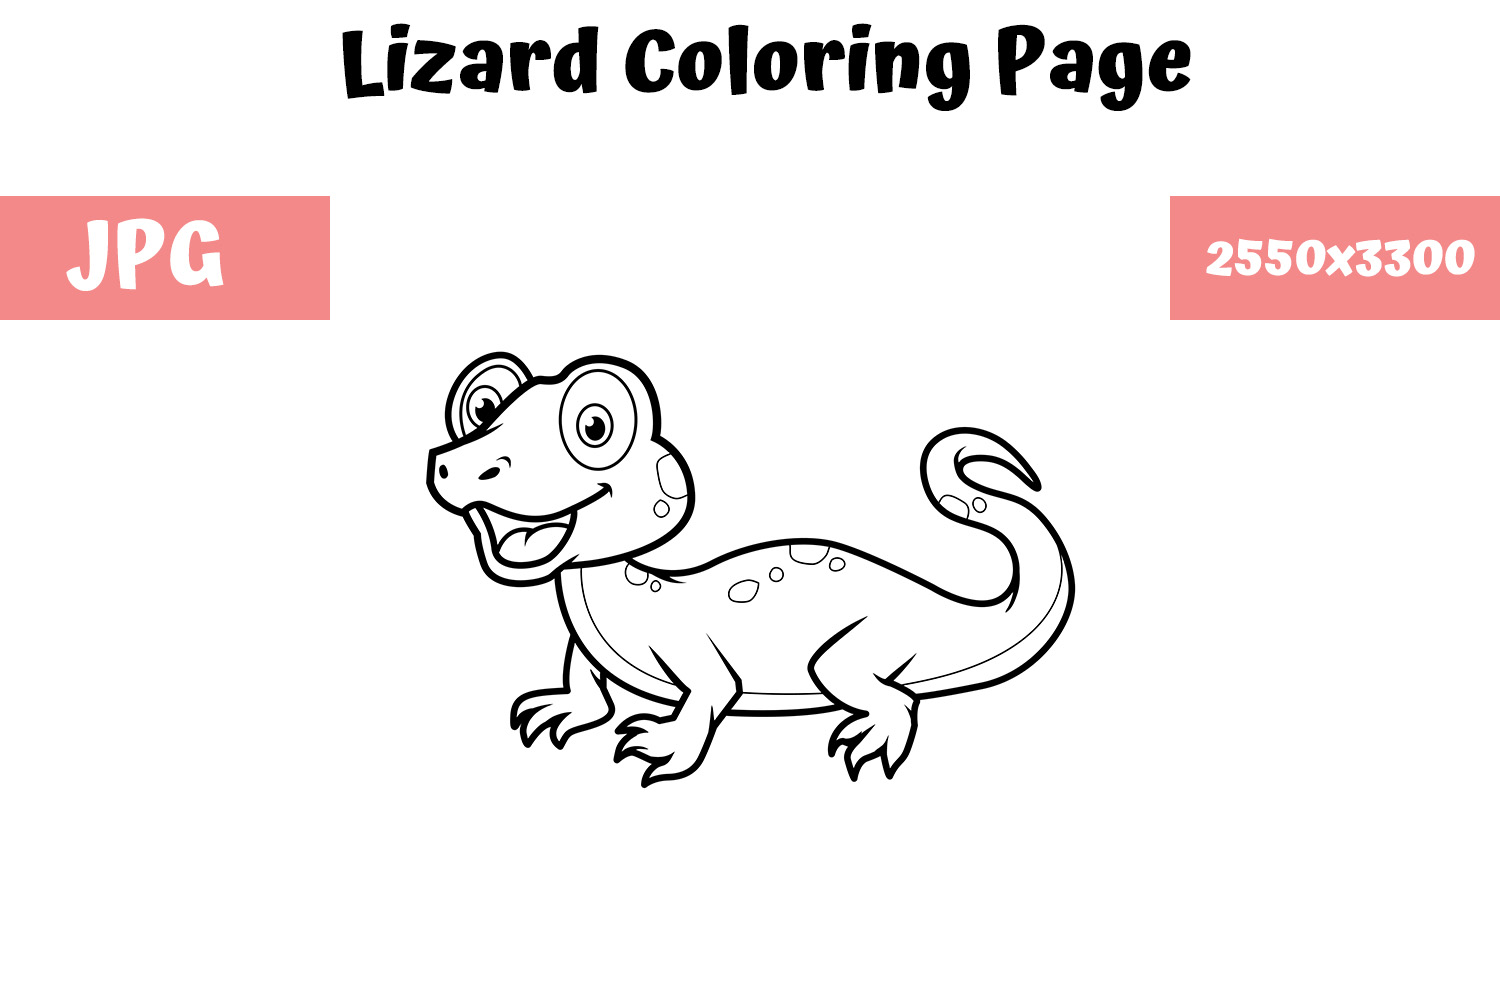 Lizard Coloring Pages For Adults || COLORING-PAGES-PRINTABLE.COM | 1000x1500